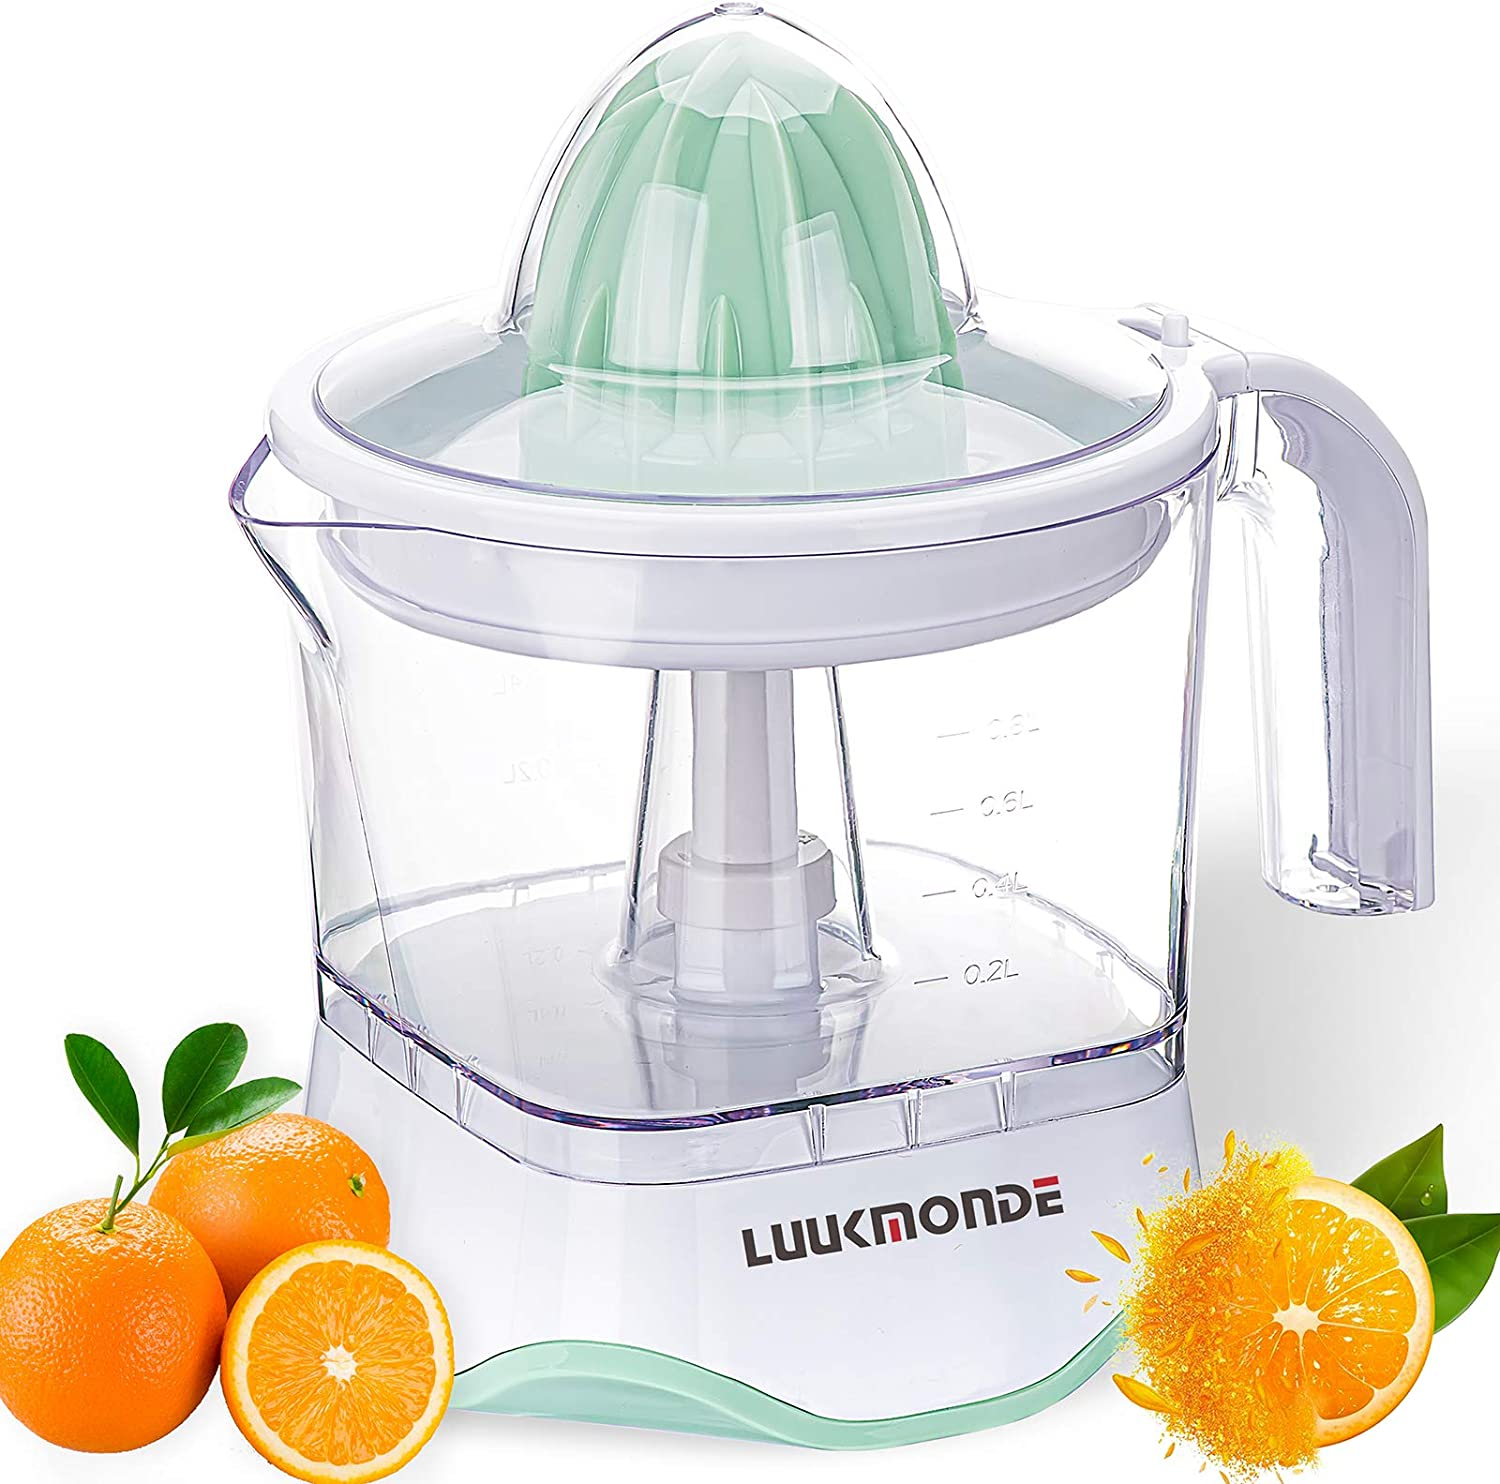 Electric Citrus Juicer with pulp control filter and dust proof cover, orange squeezer with two alternative cones and Professional Motor, Electric juice extractor for Grapefruit Orange Lemon by LUUKMONDE